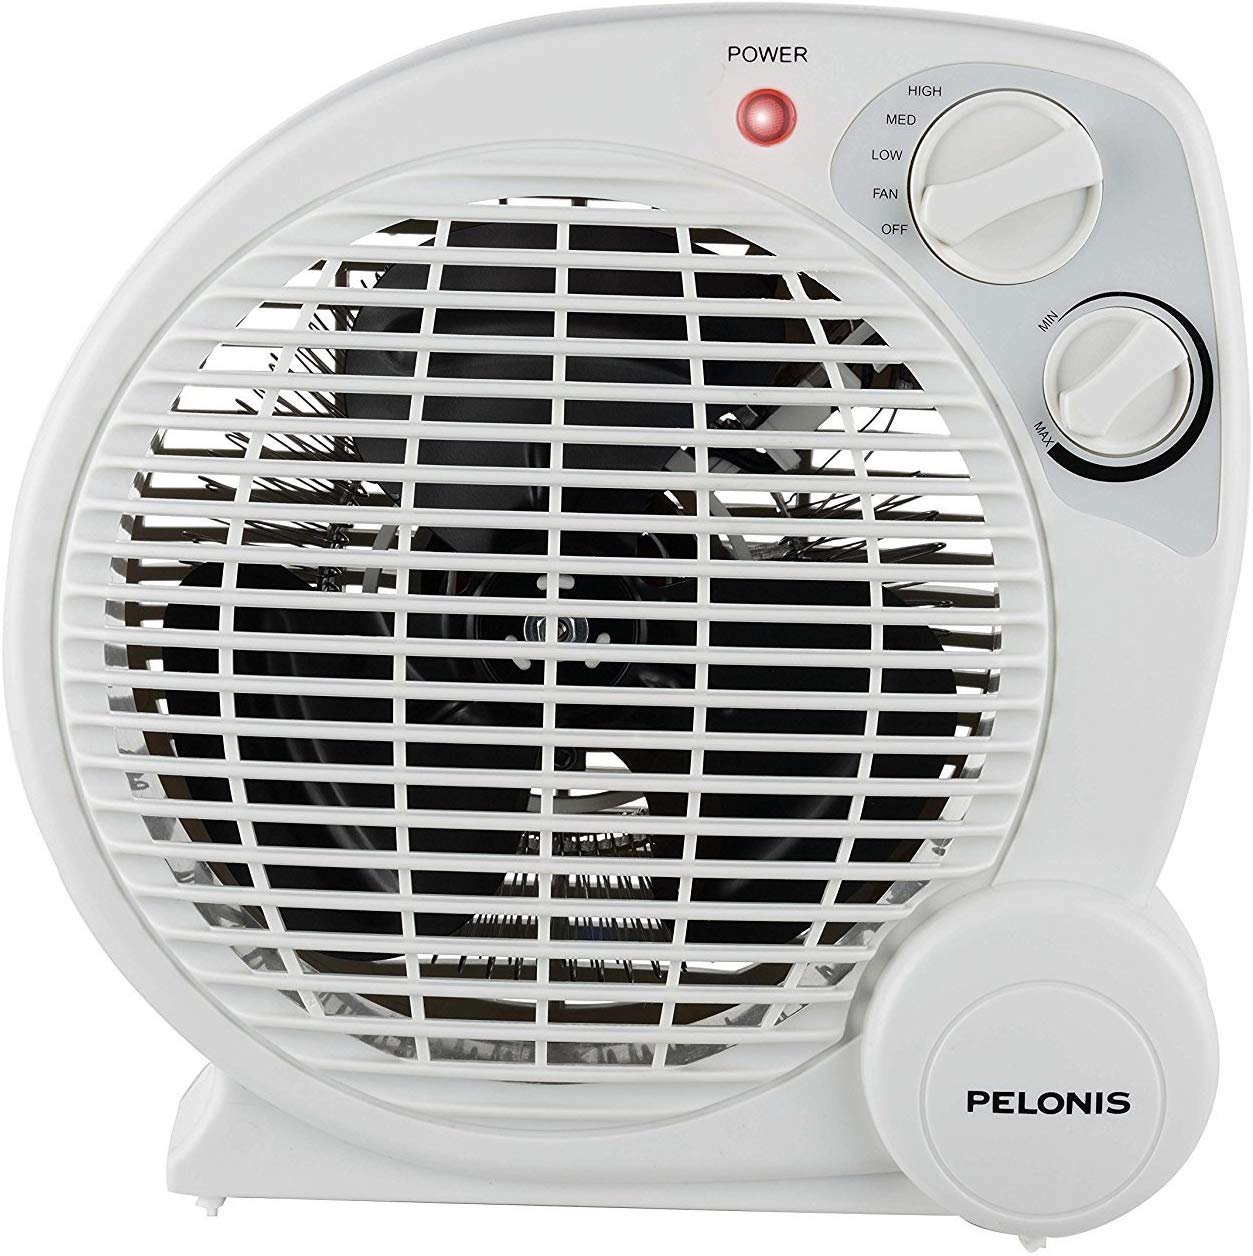 PELONIS HB-212T 3-Speed Fan Heater with Adjustable Thermostat